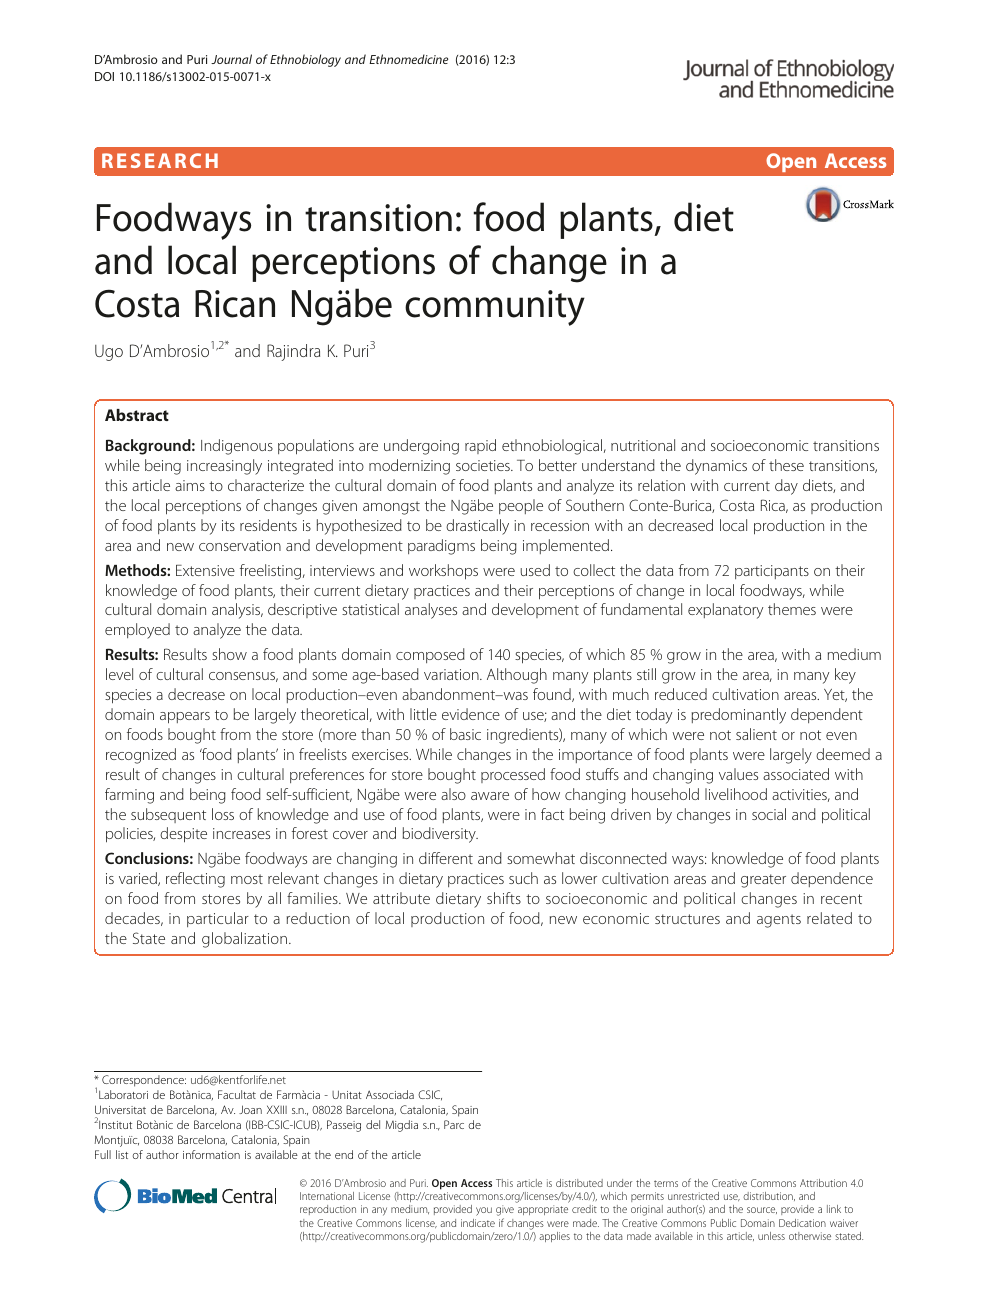 Foodways In Transition Food Plants Diet And Local